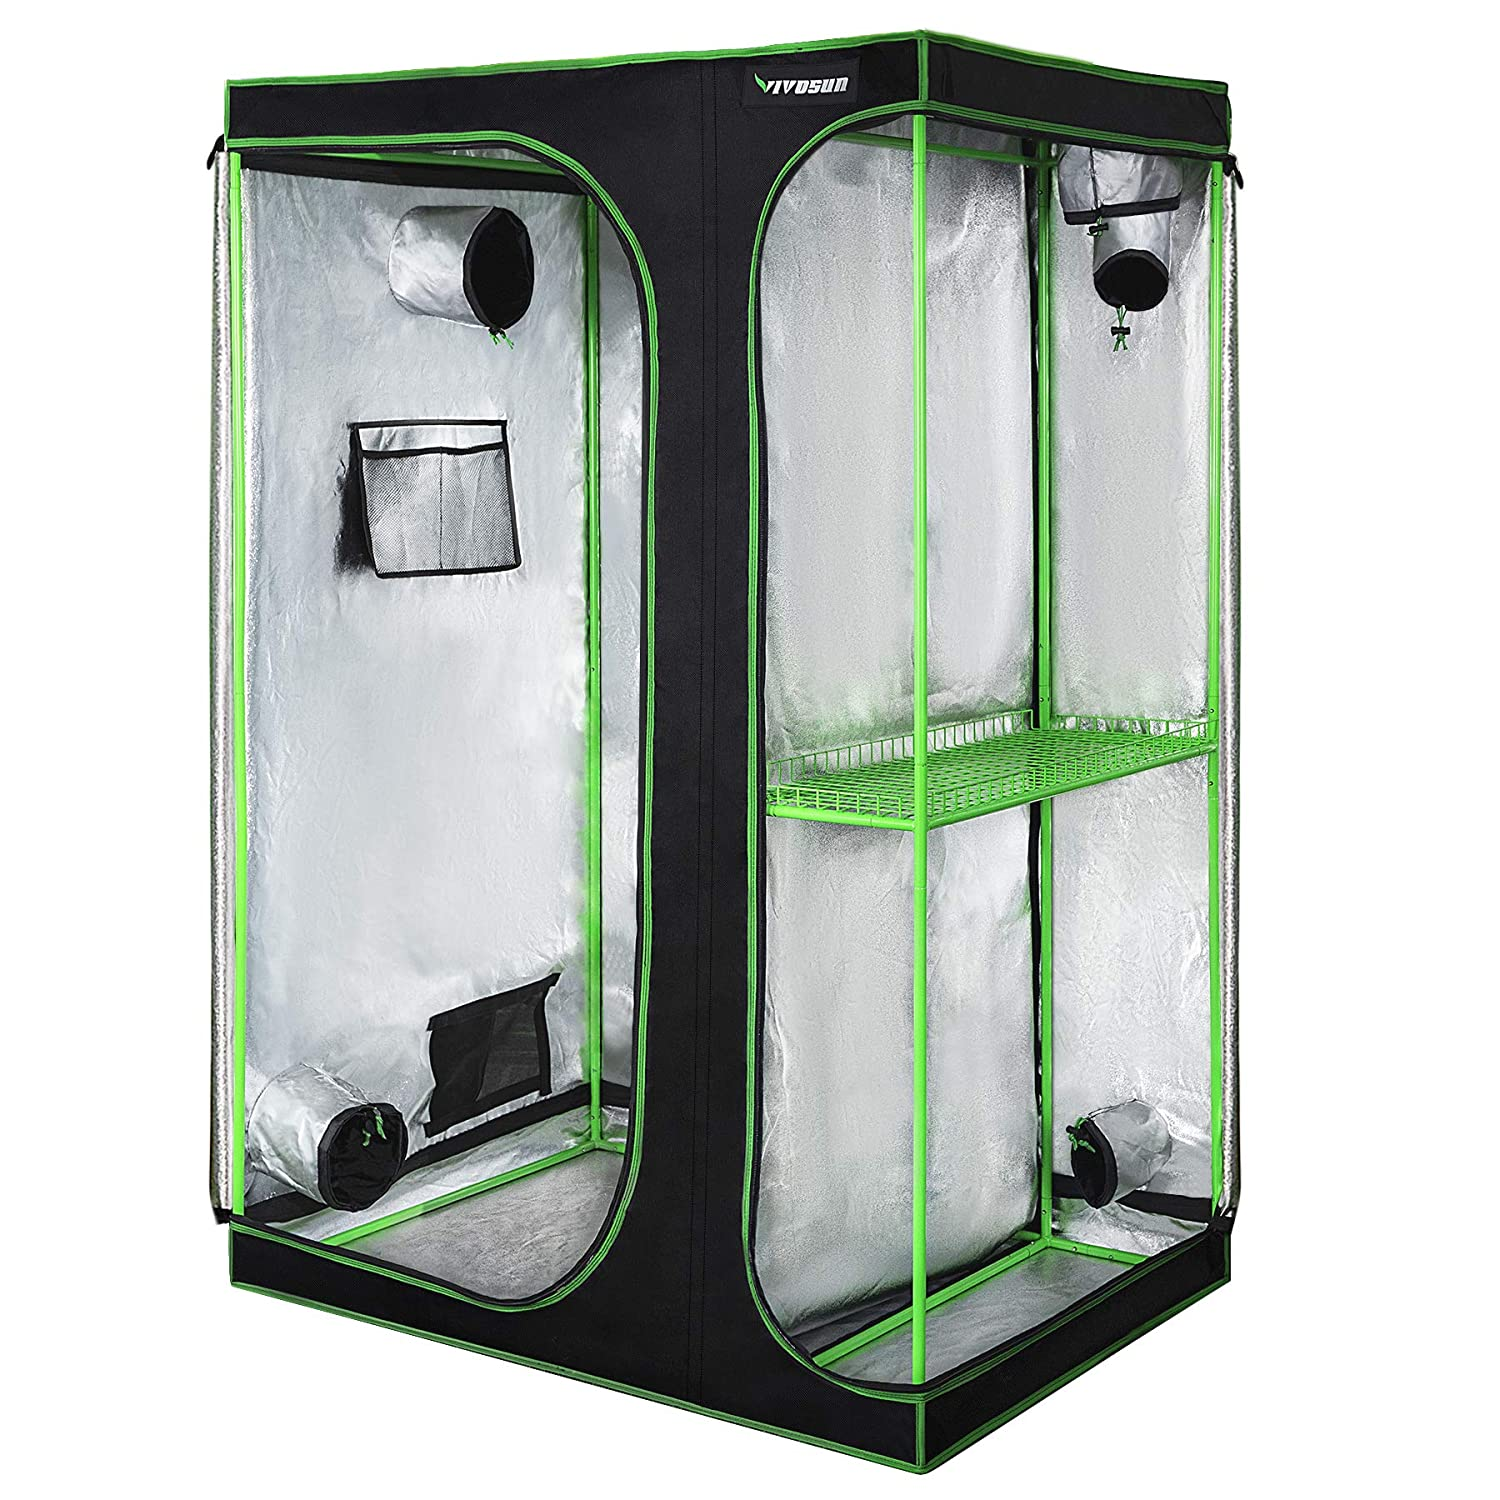 VIVOSUN 2-in-1 48 x36 x72 Mylar Reflective Grow Tent for Indoor Hydroponic Growing System